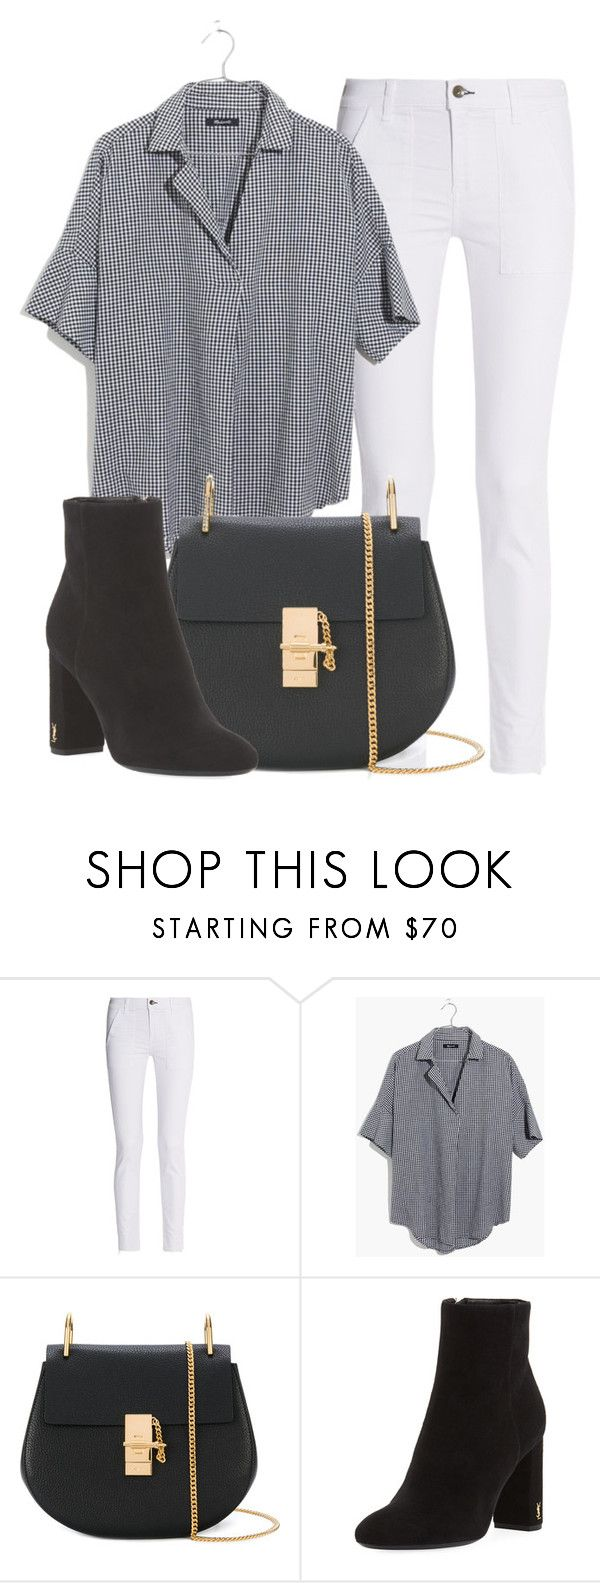 """Outfit #1814"" by lauraandrade98 on Polyvore featuring moda, rag & bone, Madewell, Chloé y Yves Saint Laurent"